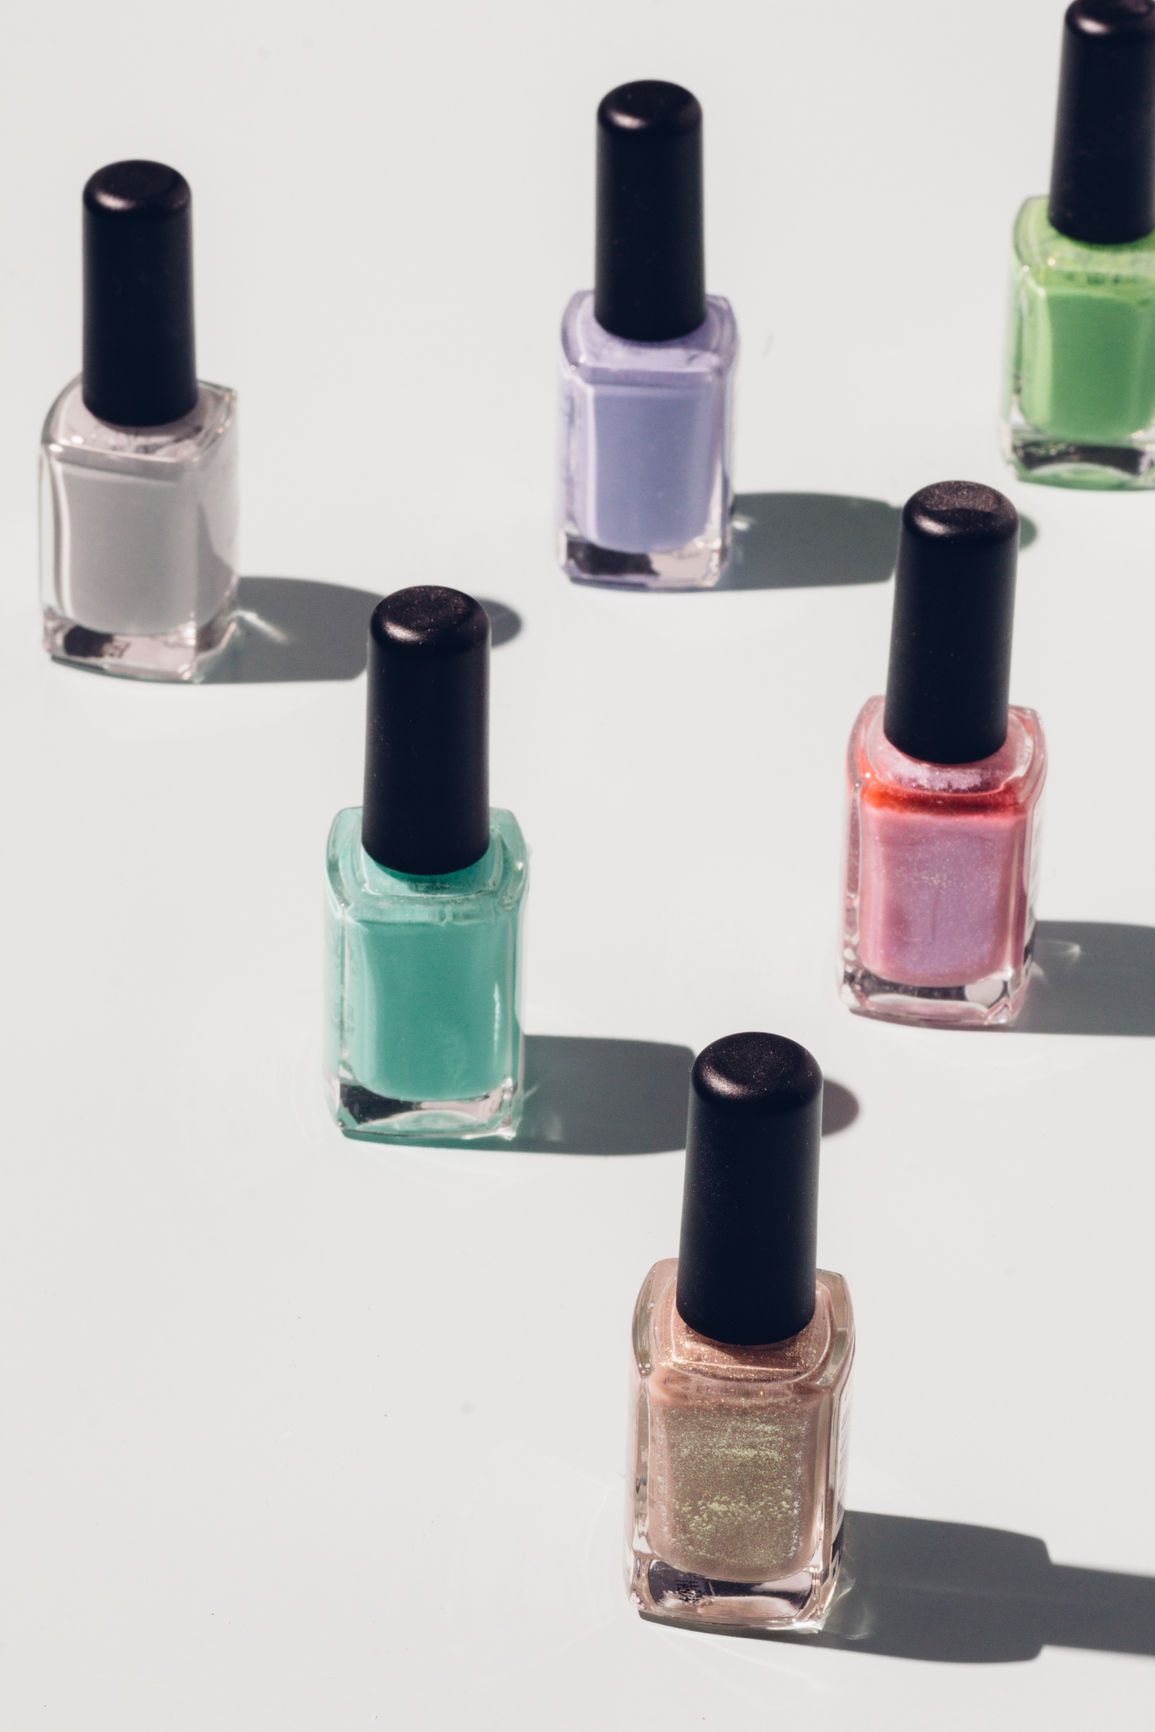 The 8 Best Drugstore Nail Polishes Of 2020